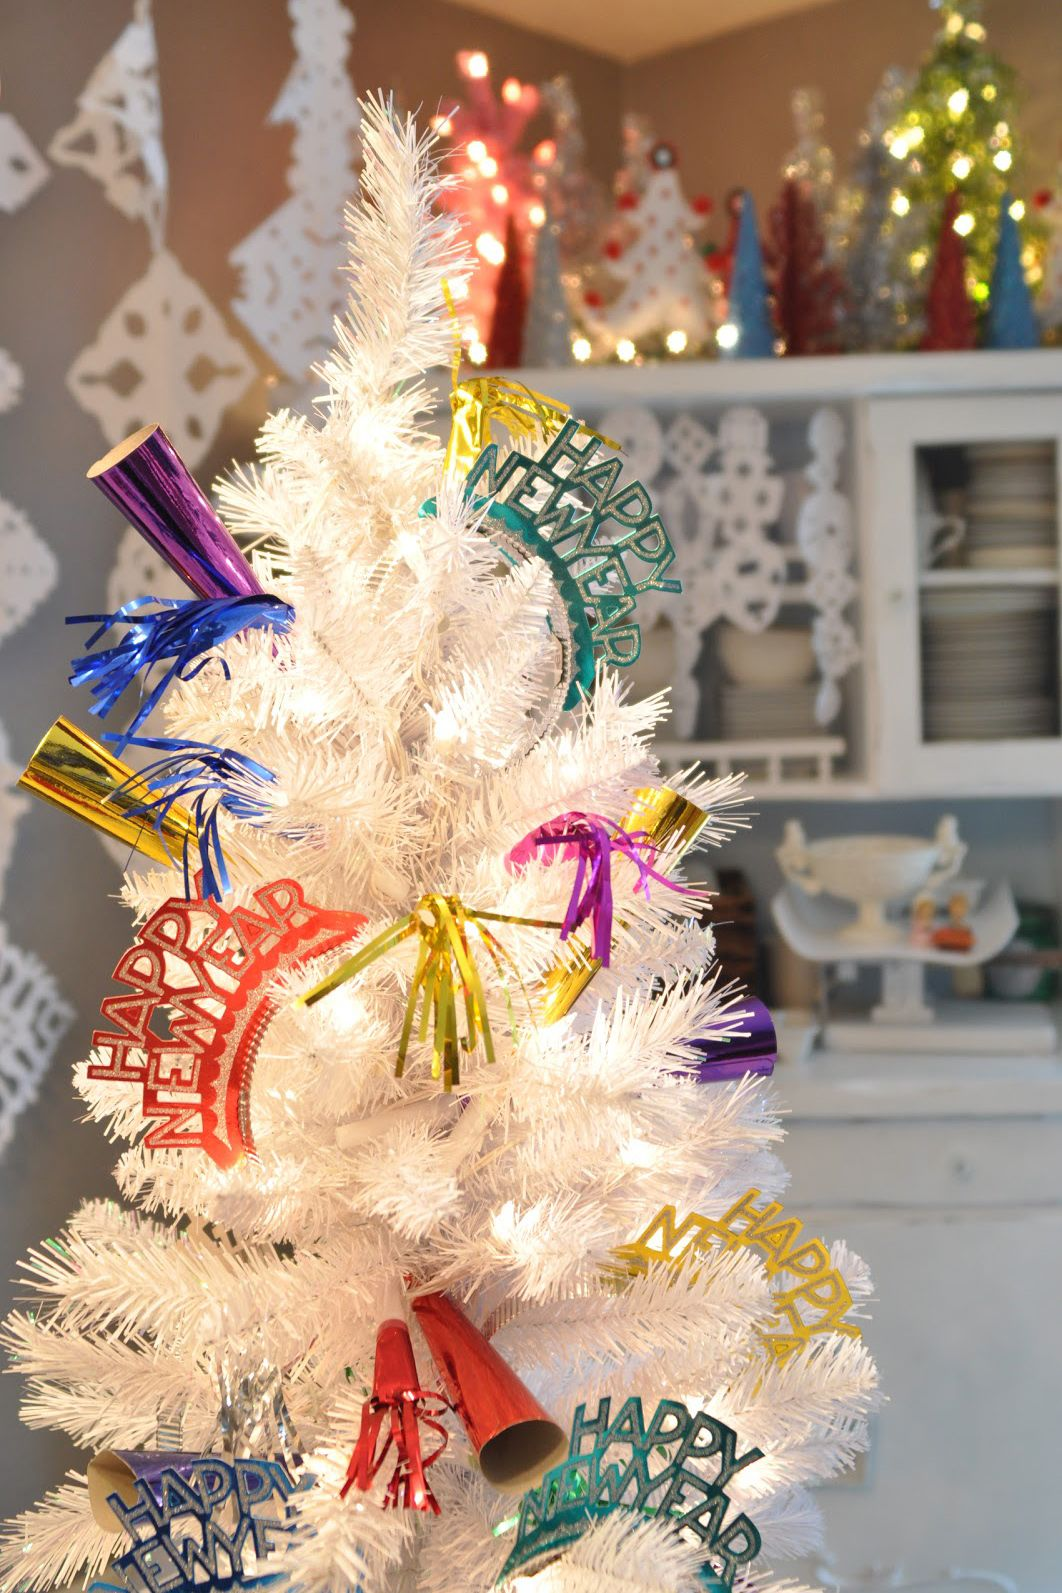 """<p>Strip your tree down to the needles and lights, and then adorn it with party poppers and streamers.It doesn't get easier than that!</p><p><em data-redactor-tag=""""em""""><a href=""""http://www.domesticfashionista.com/2011/12/new-years-eve-tree.html"""" target=""""_blank"""" data-tracking-id=""""recirc-text-link"""" data-href=""""http://www.domesticfashionista.com/2011/12/new-years-eve-tree.html"""">Get the tutorial from Domestic Fashionista »</a></em></p>"""